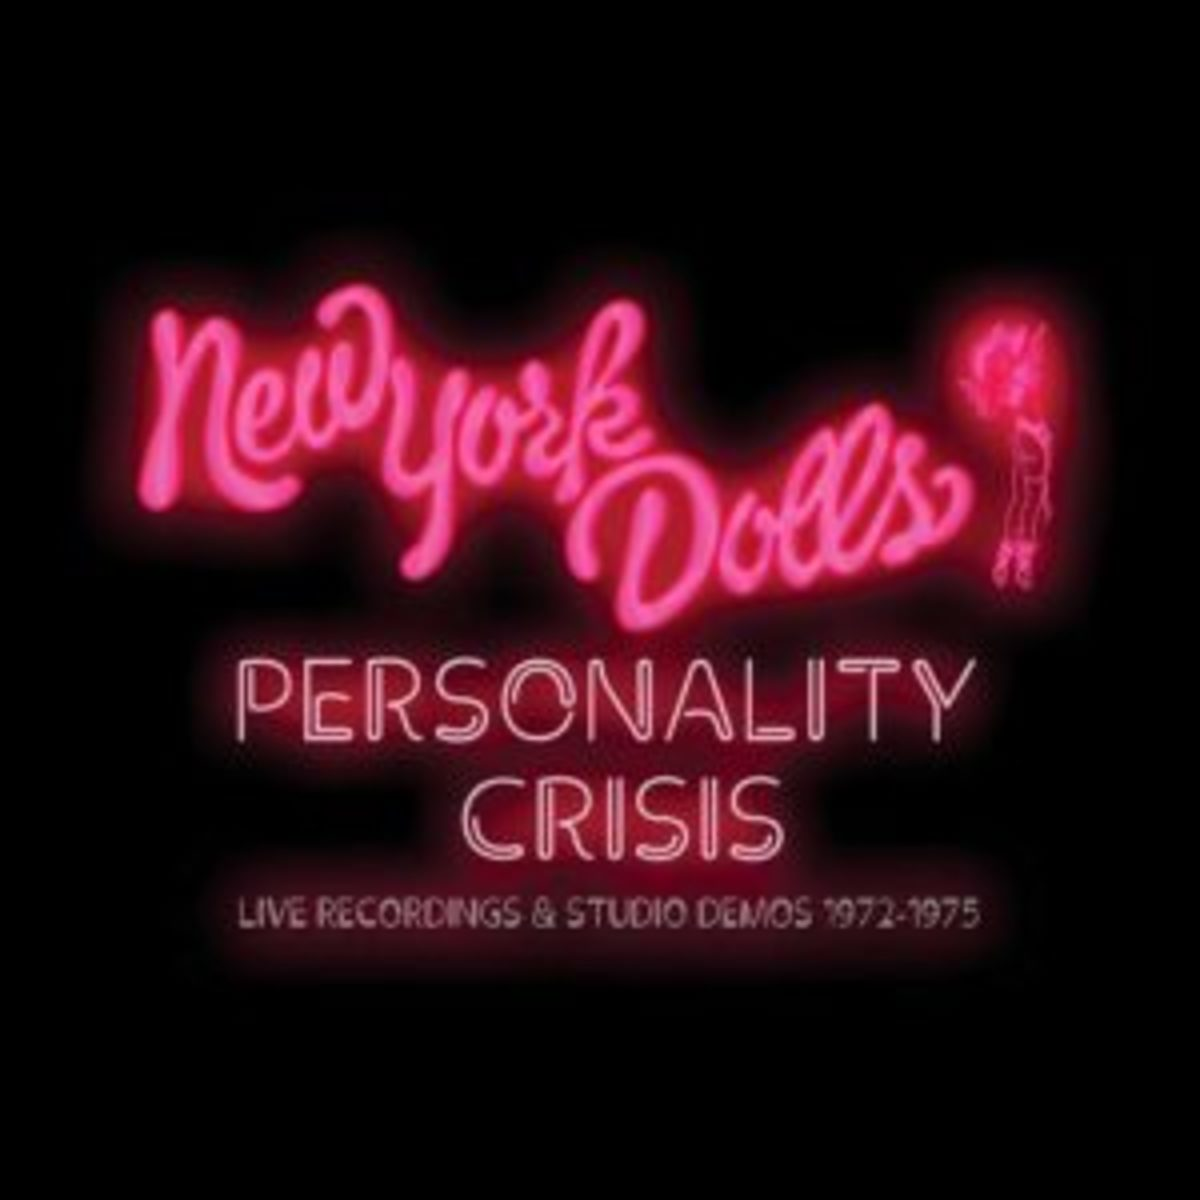 Review New York Dolls Box Set Goldmine Magazine Record Collector Music Memorabilia